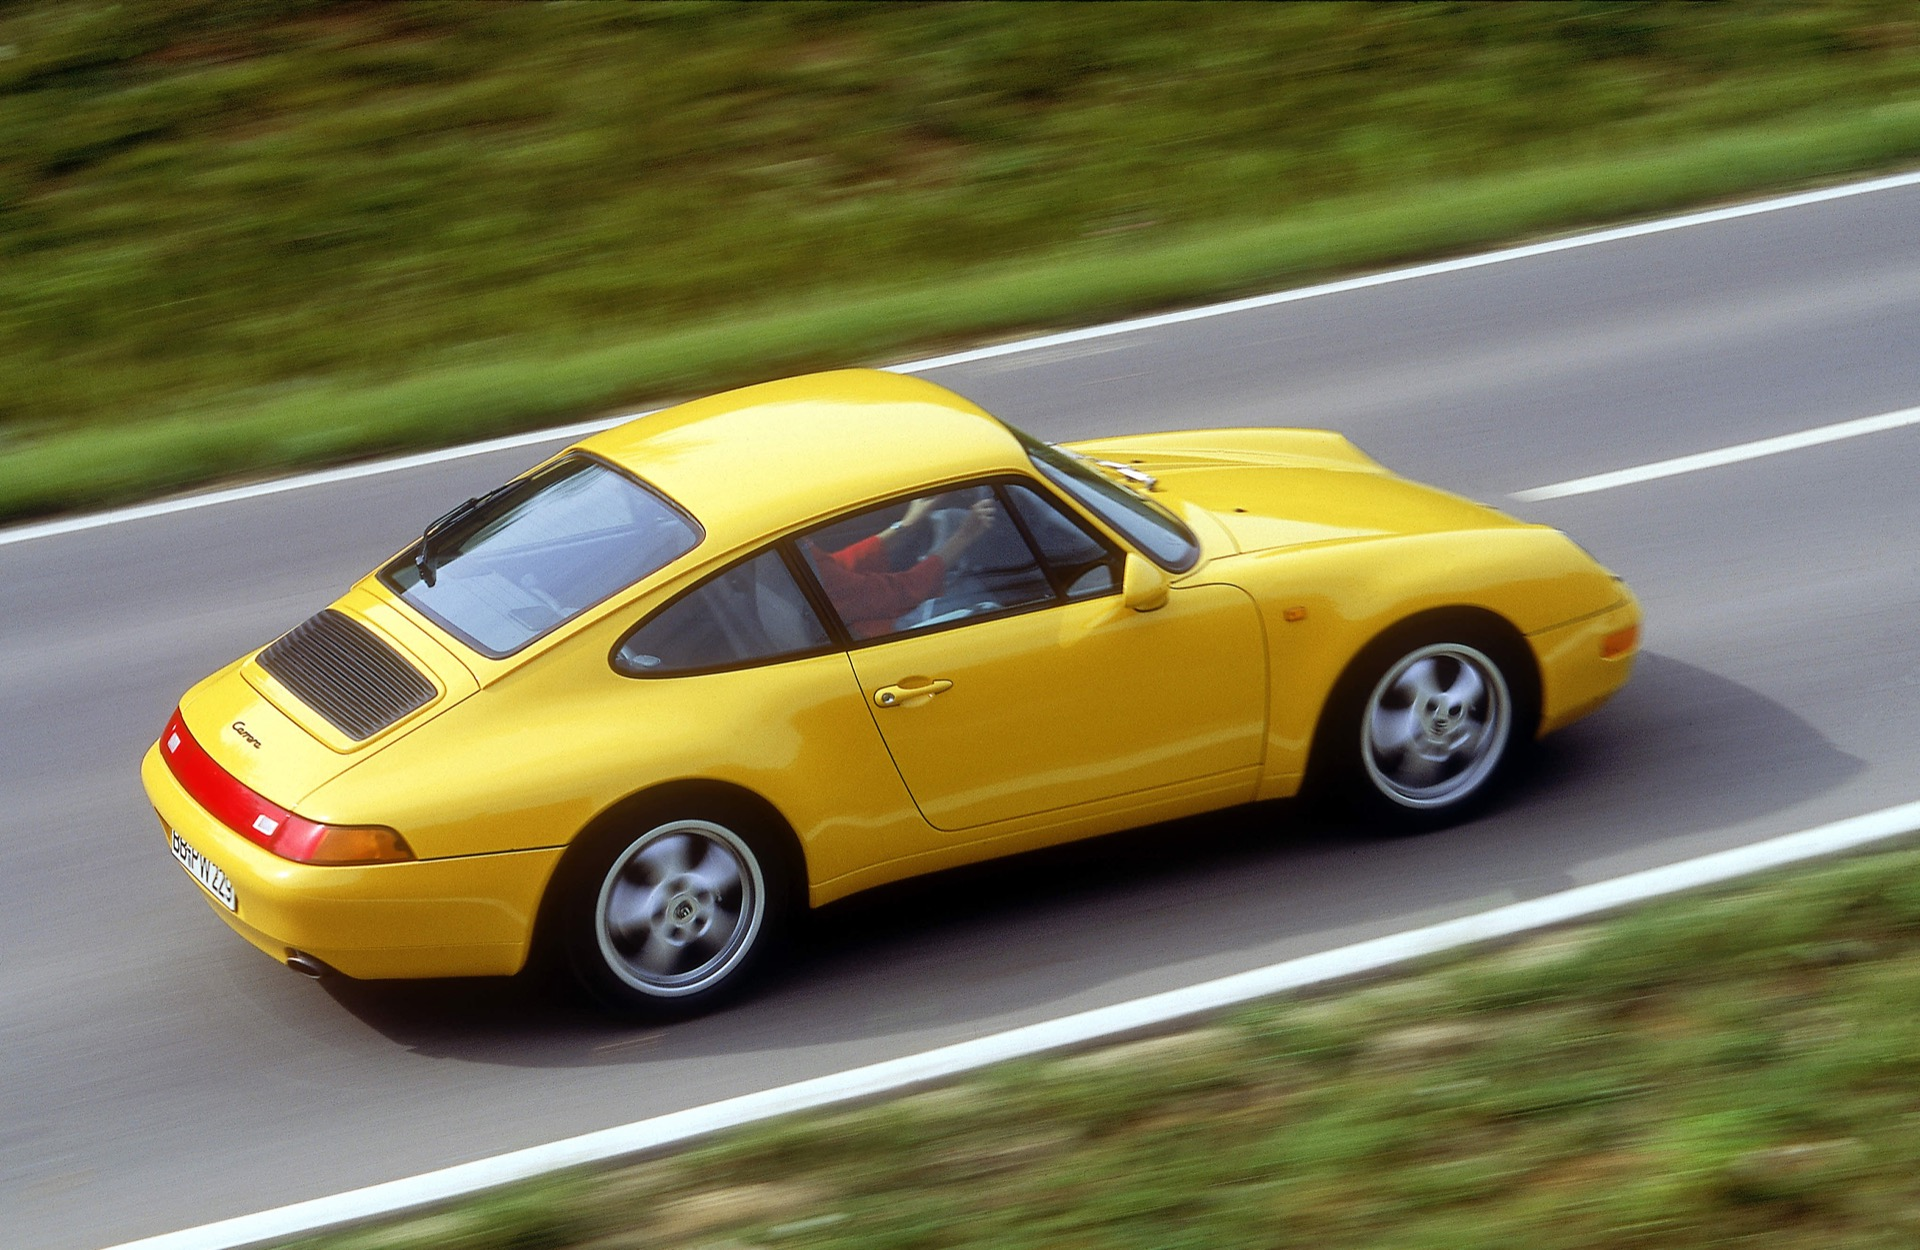 1994, 911 Carrrea Coupé, Typ 993, 3,6 Liter, Generationen